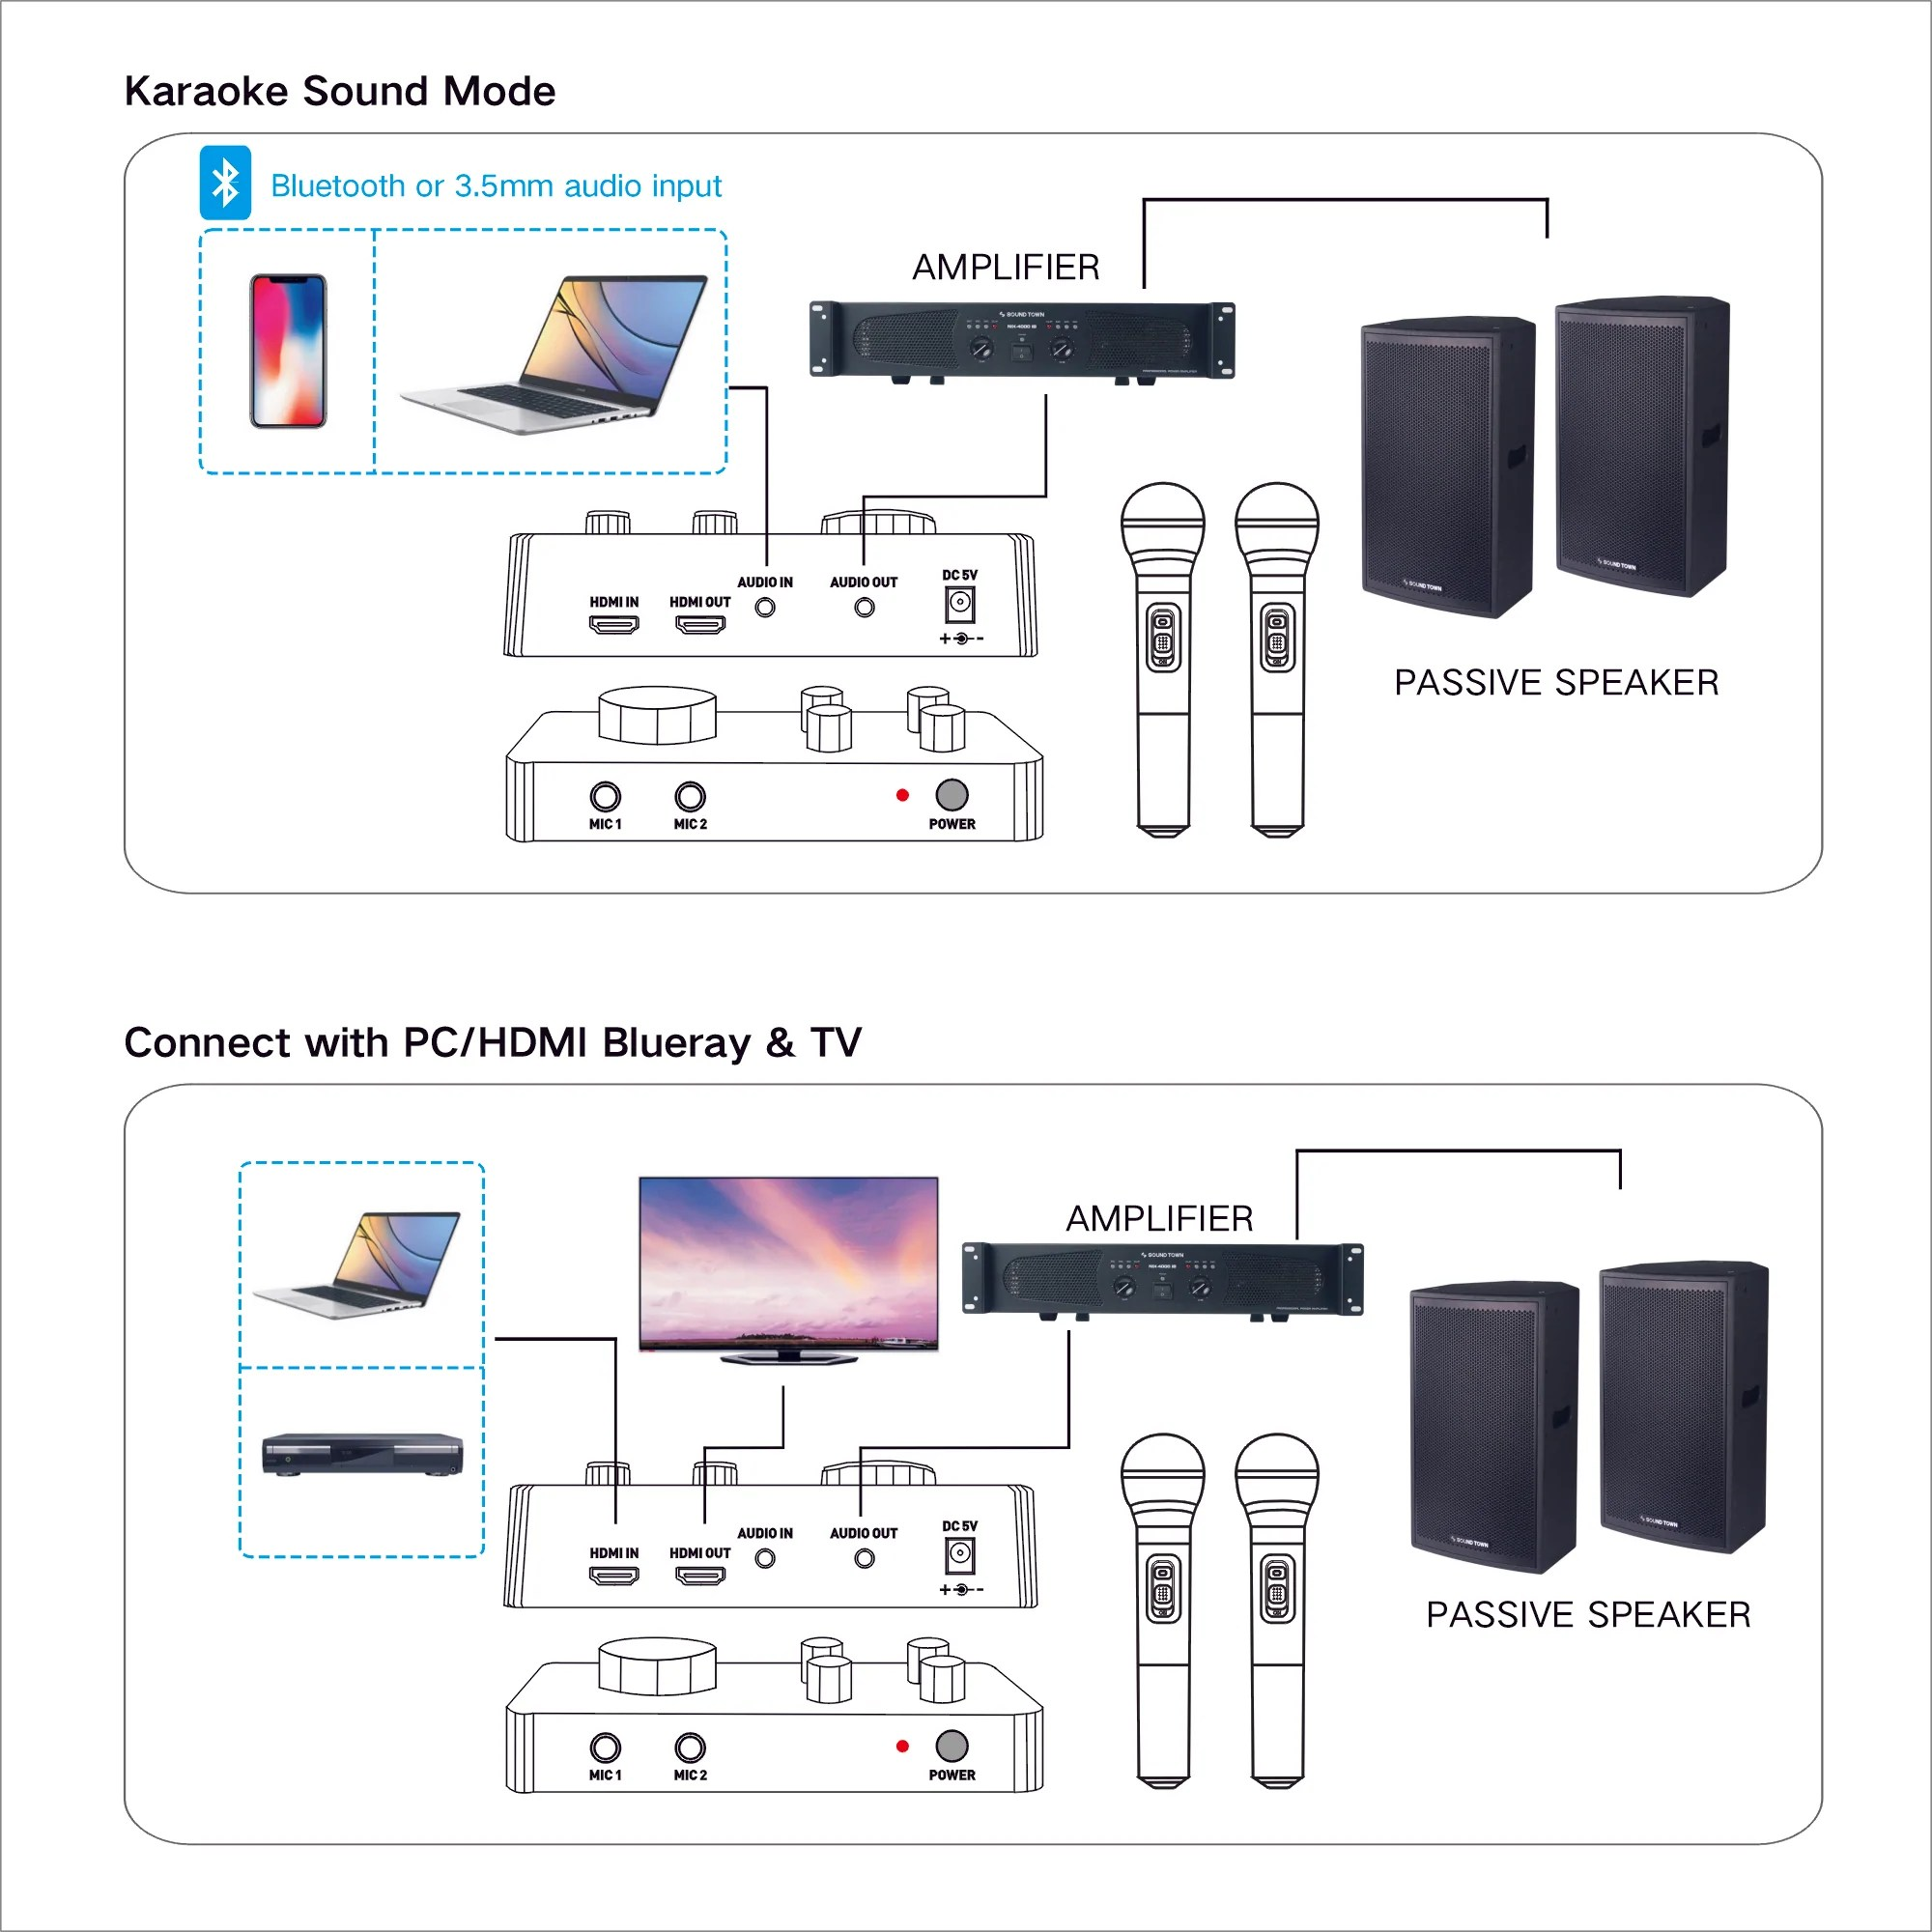 swm15 pro 16 channels wireless karaoke mixer system with bluetooth 1 to pair your receiver to [ 2000 x 2000 Pixel ]